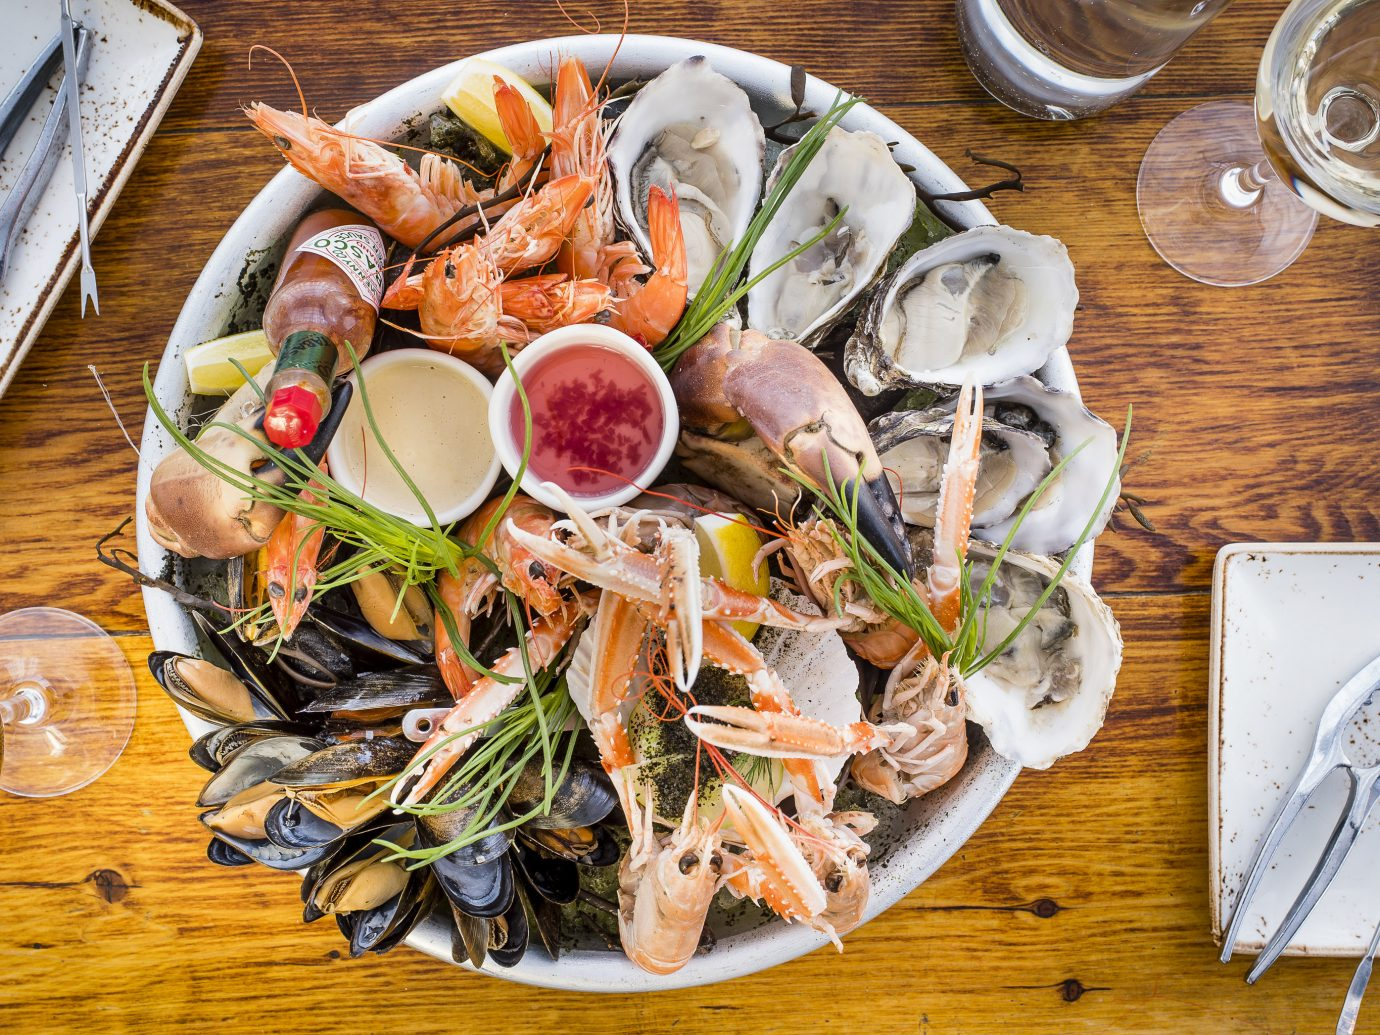 Trip Ideas table plate food dish meal cuisine fish Seafood produce mussel dinner variety